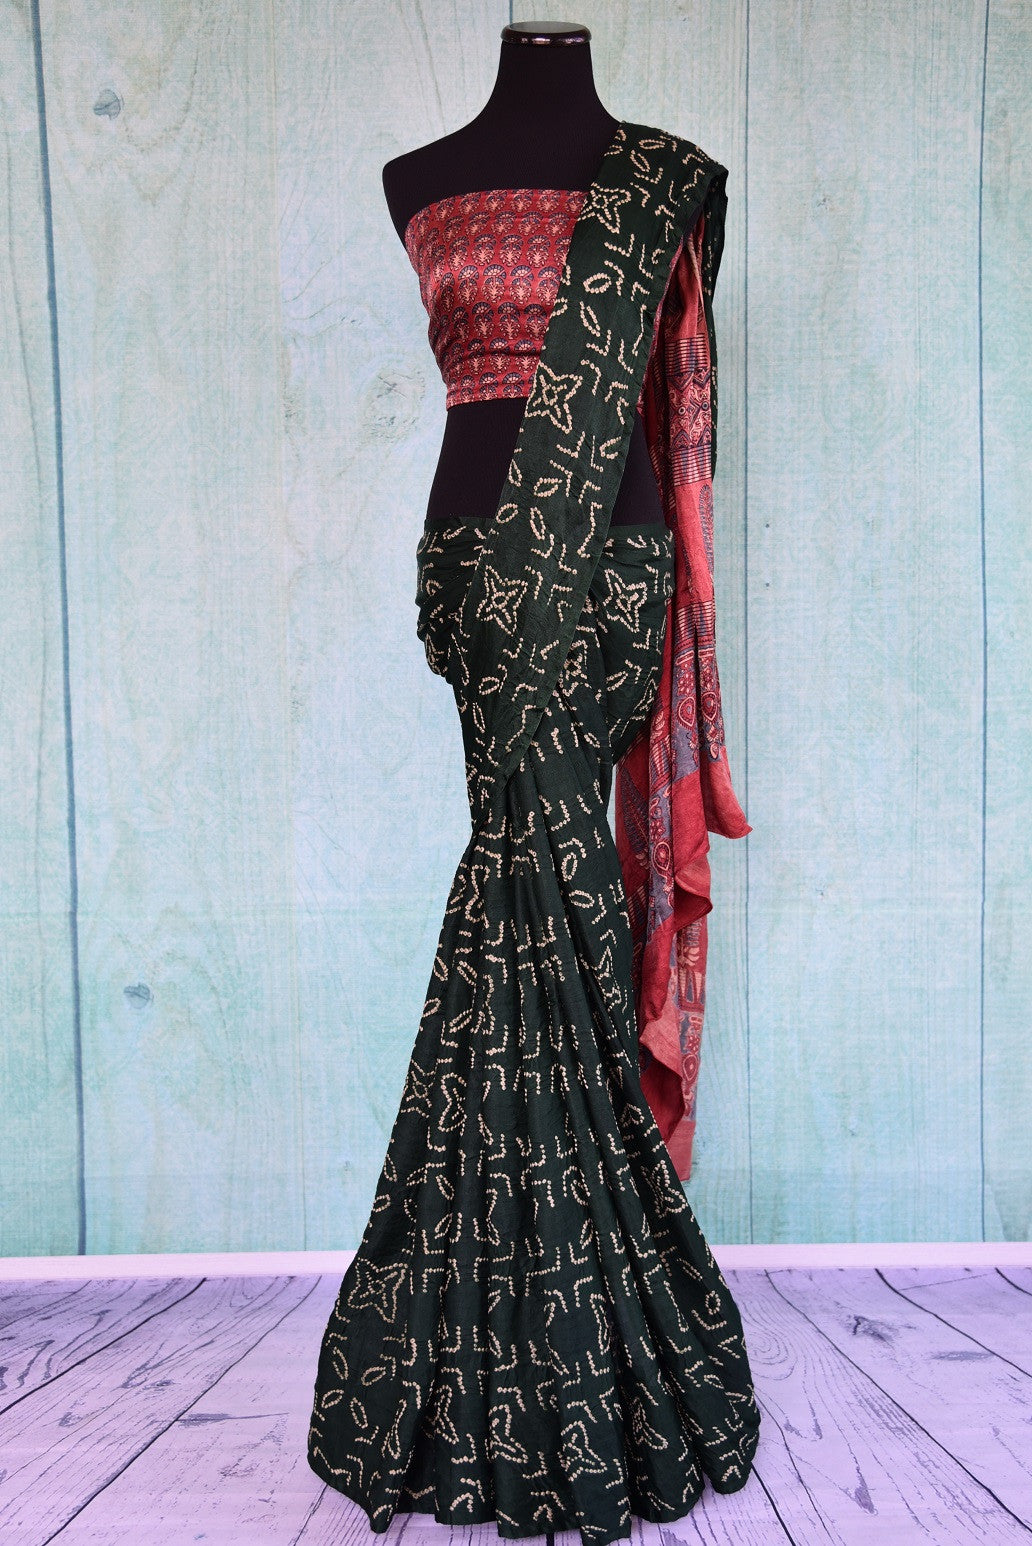 90D066 Green & beige bandhej body is teamed with multi-color ajrak printed blouse & pallu in this saree. Buy this nine yard Indian outfit online in USA at our store Pure Elegance.